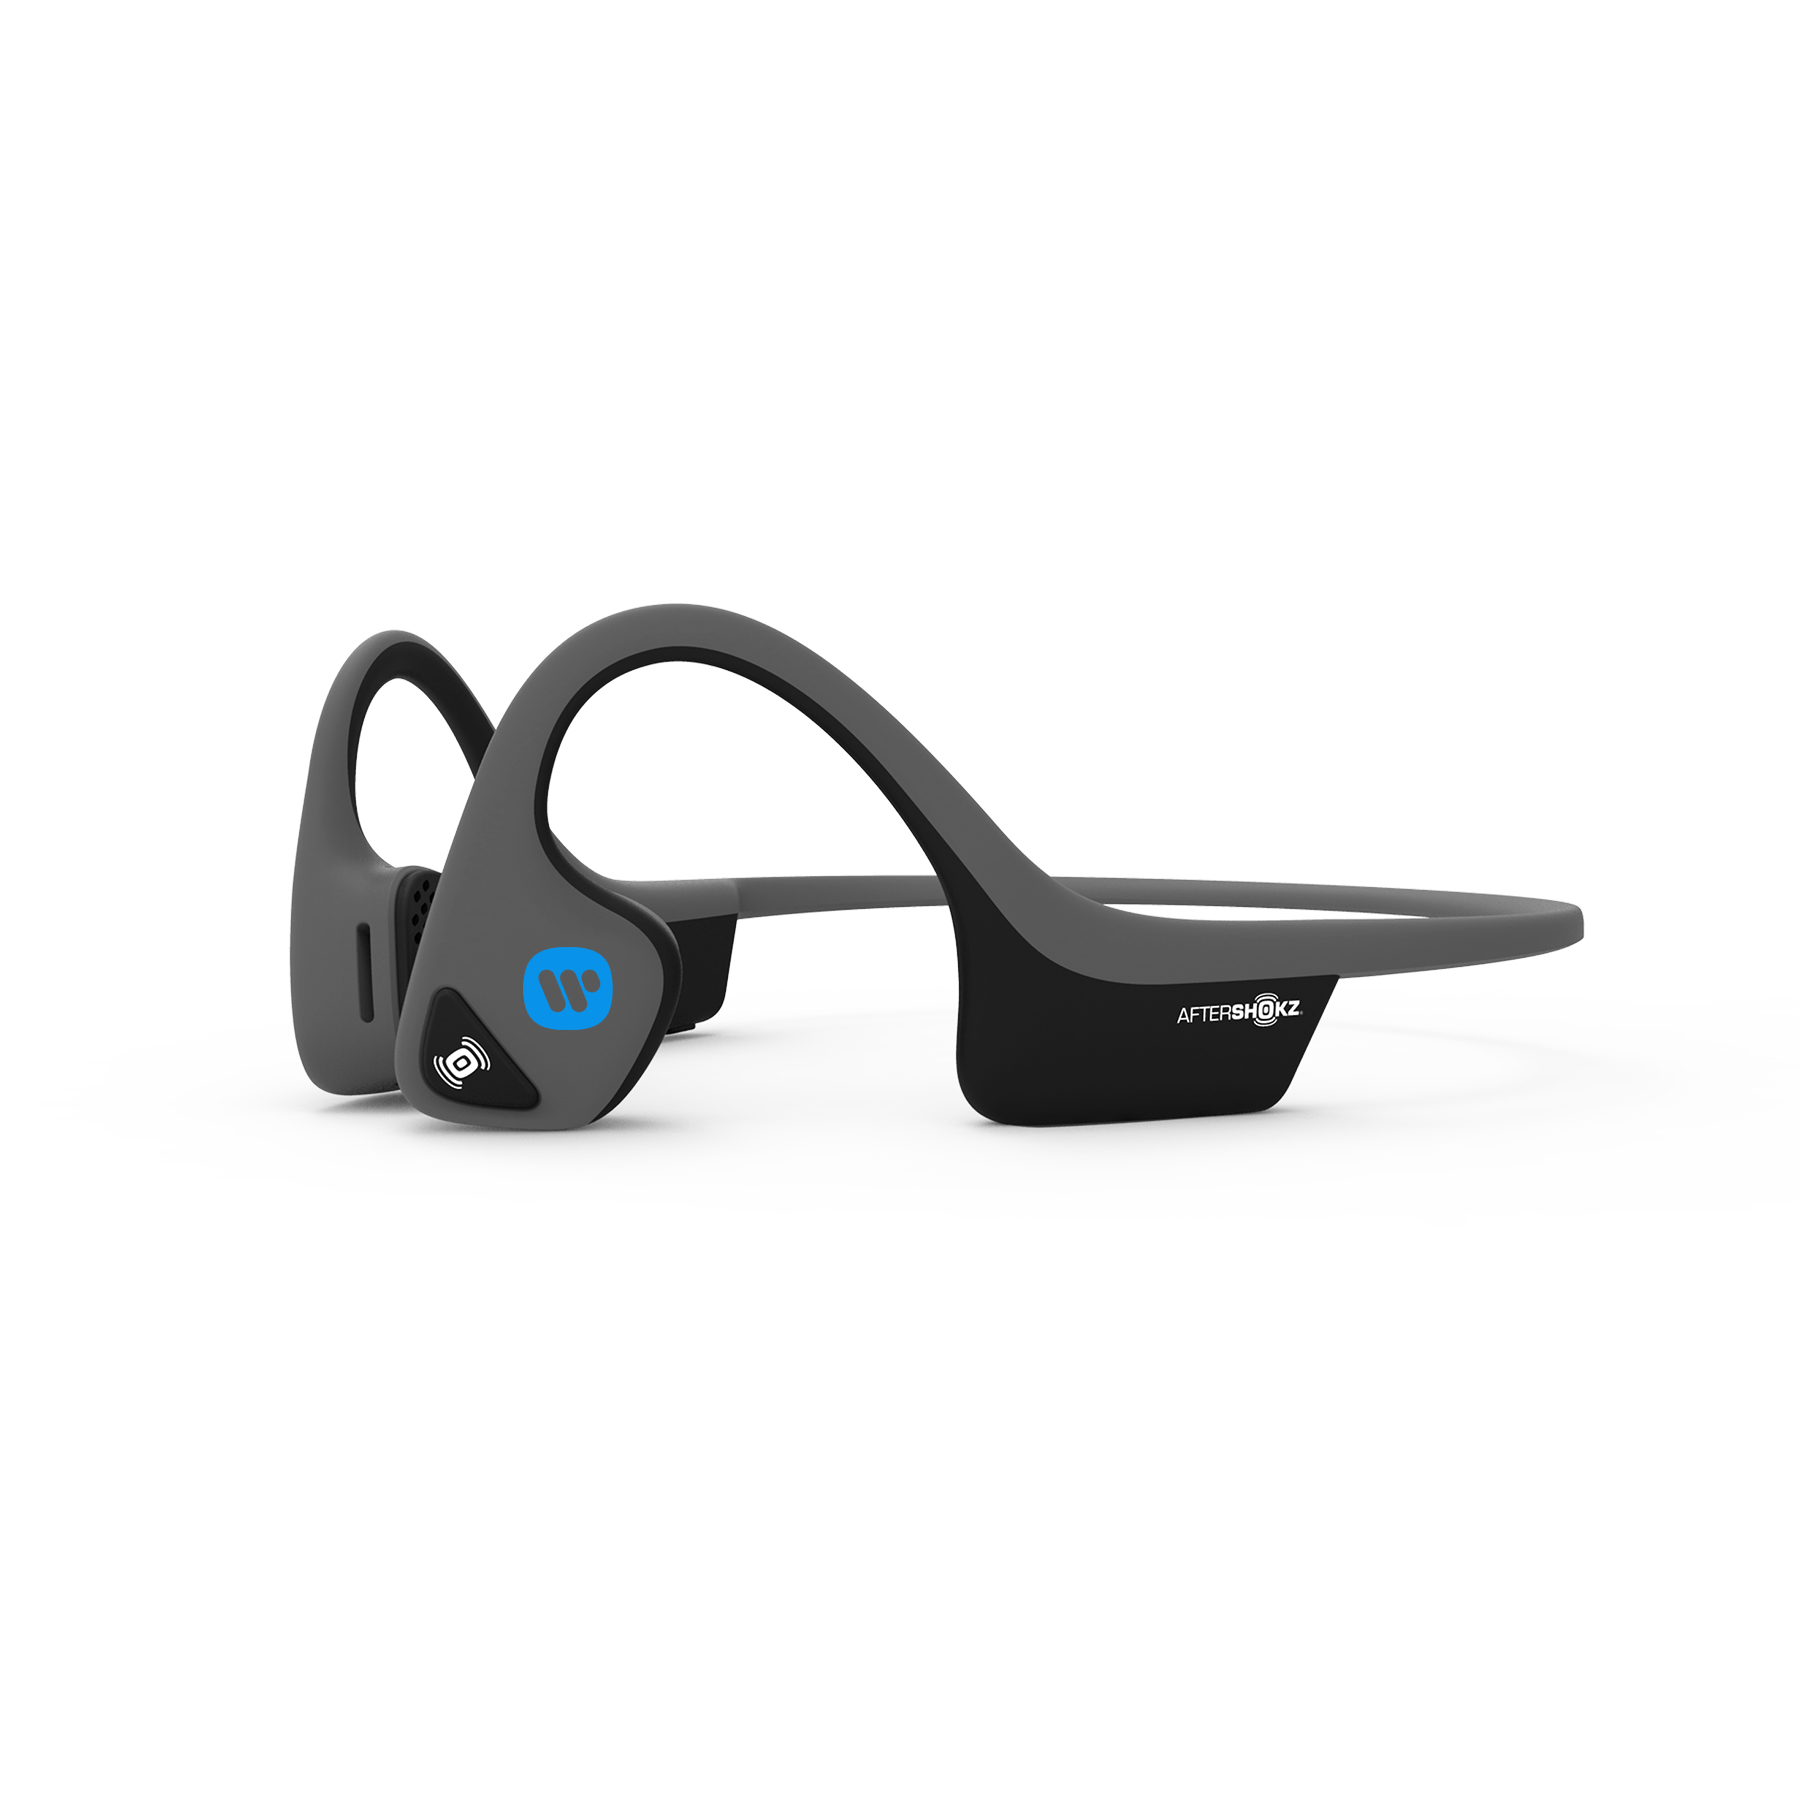 545934874-142 - AfterShokz Trekz Air Bluetooth Headphones - thumbnail